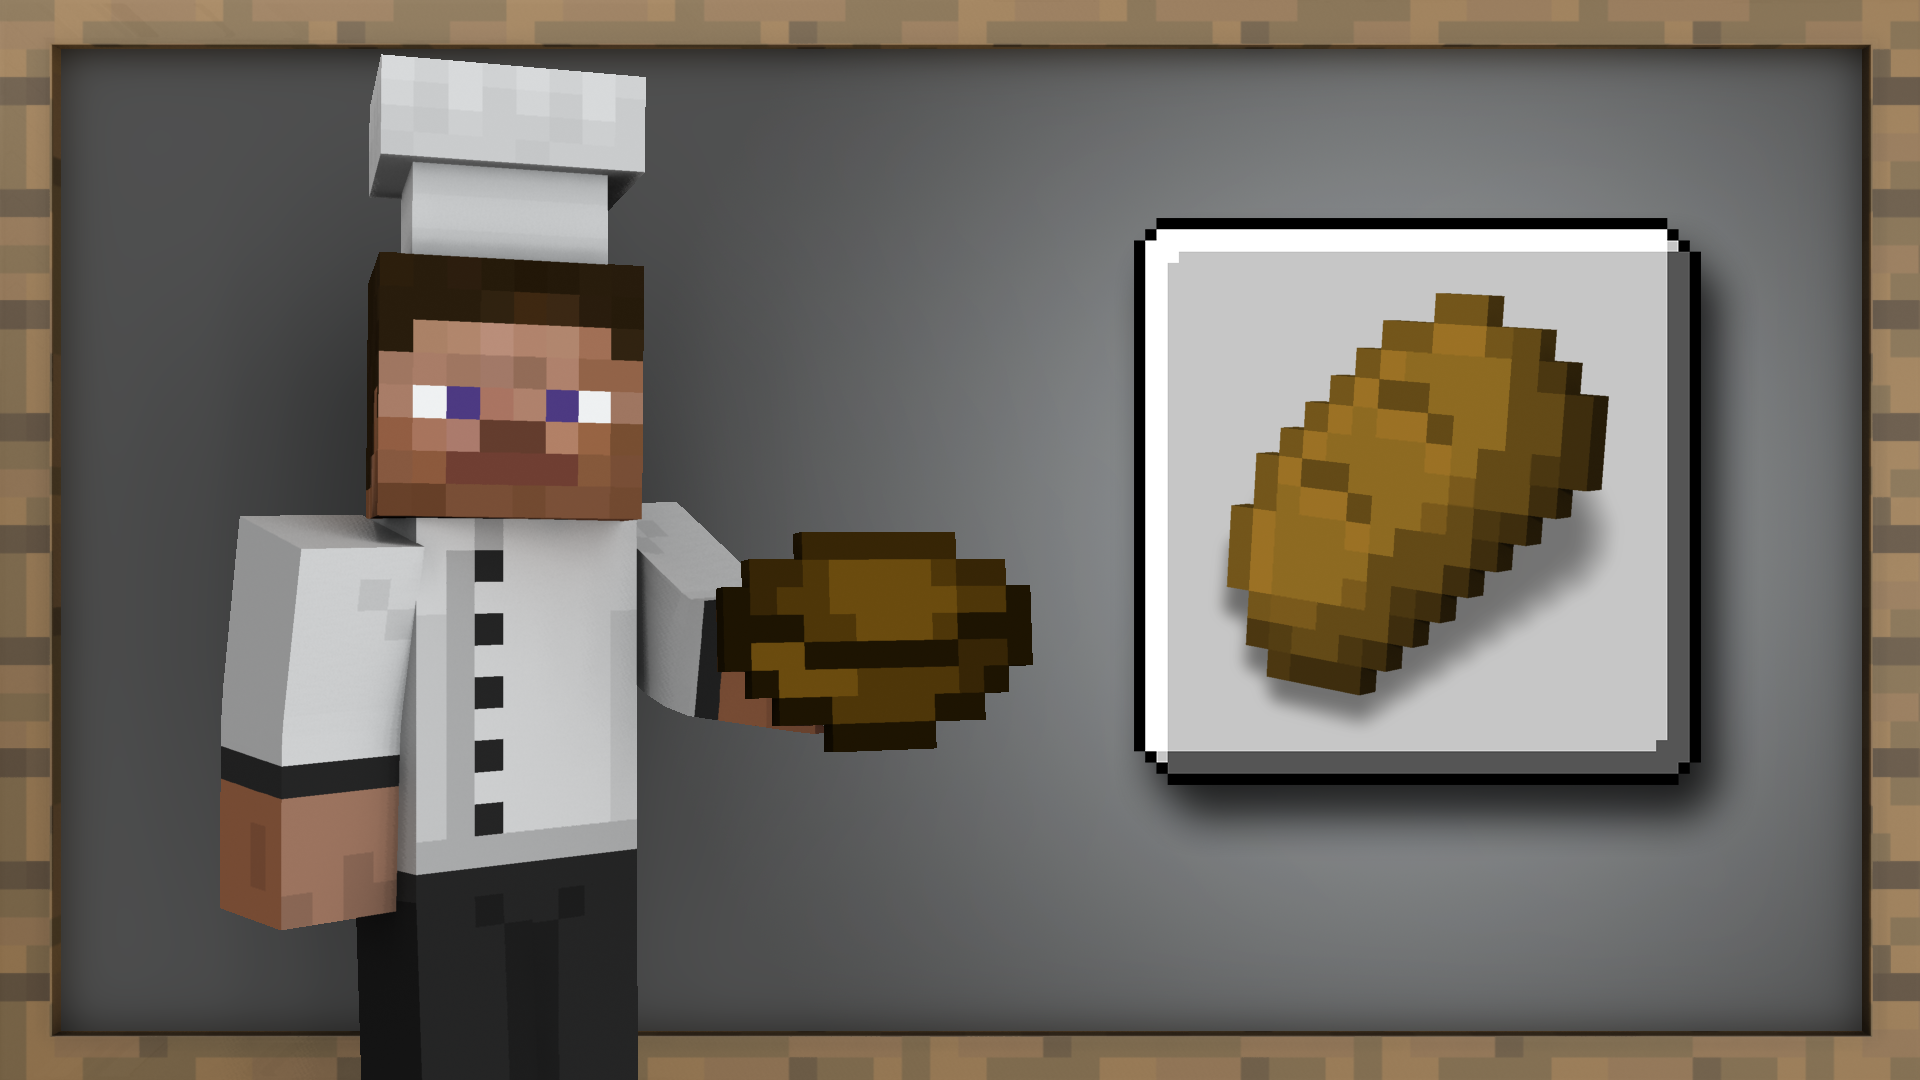 Bake Bread achievement for Minecraft on Nintendo Switch